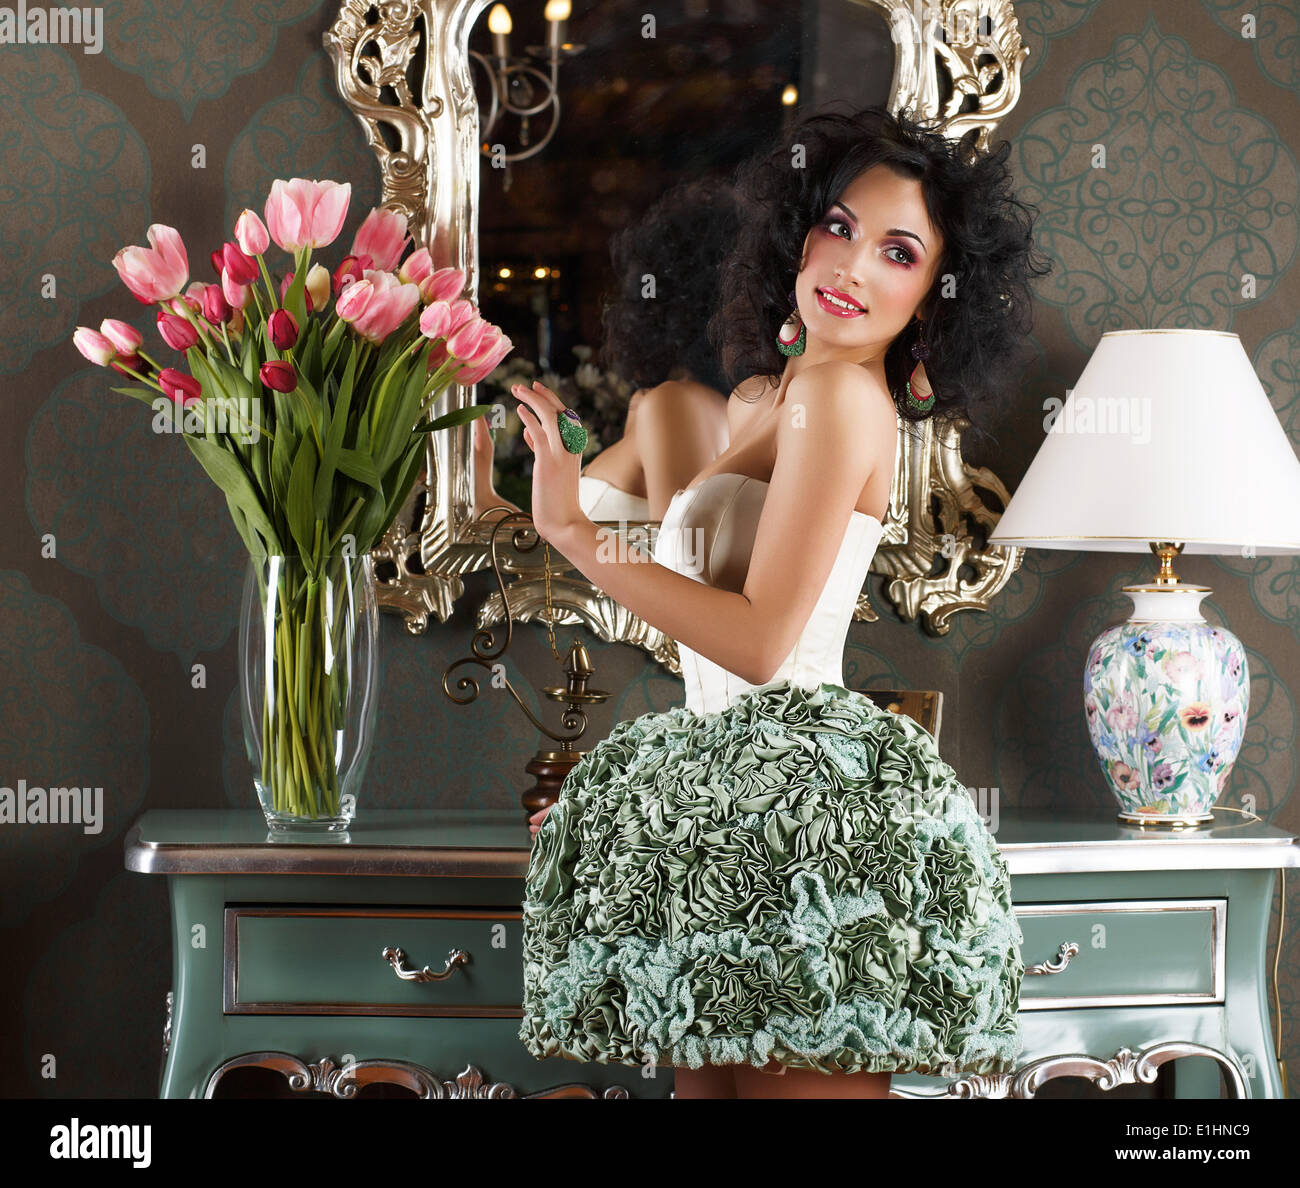 Beautiful Glamorous Woman in Retro Interior with Vase of Flowers. Reflection - Stock Image